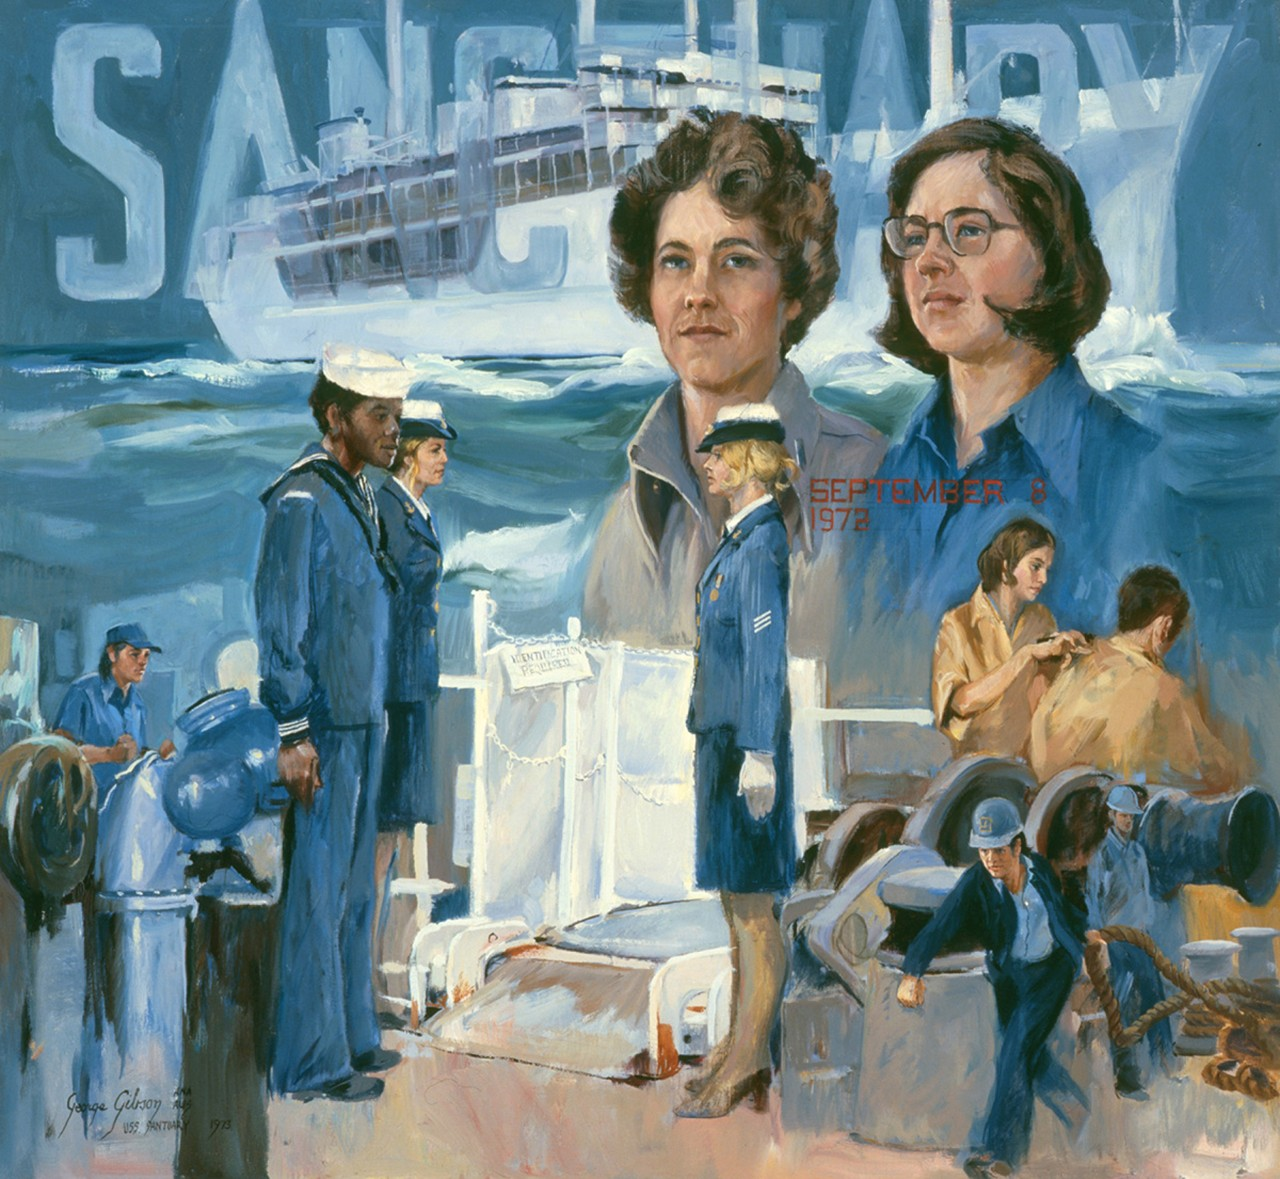 A montage of women and African Americans related to USS Sanctuary